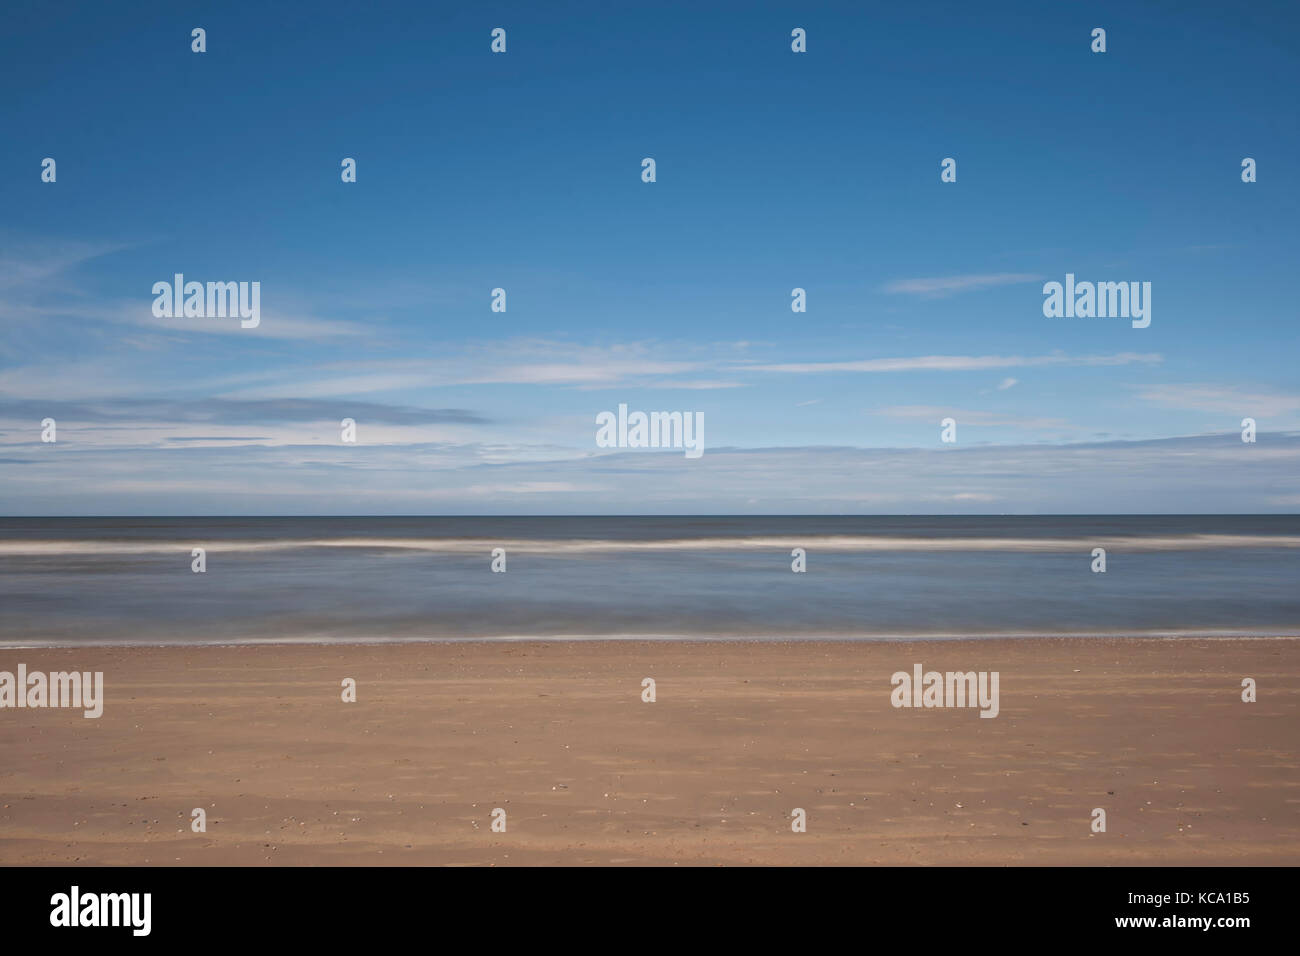 Beach with ND Filter - Stock Image